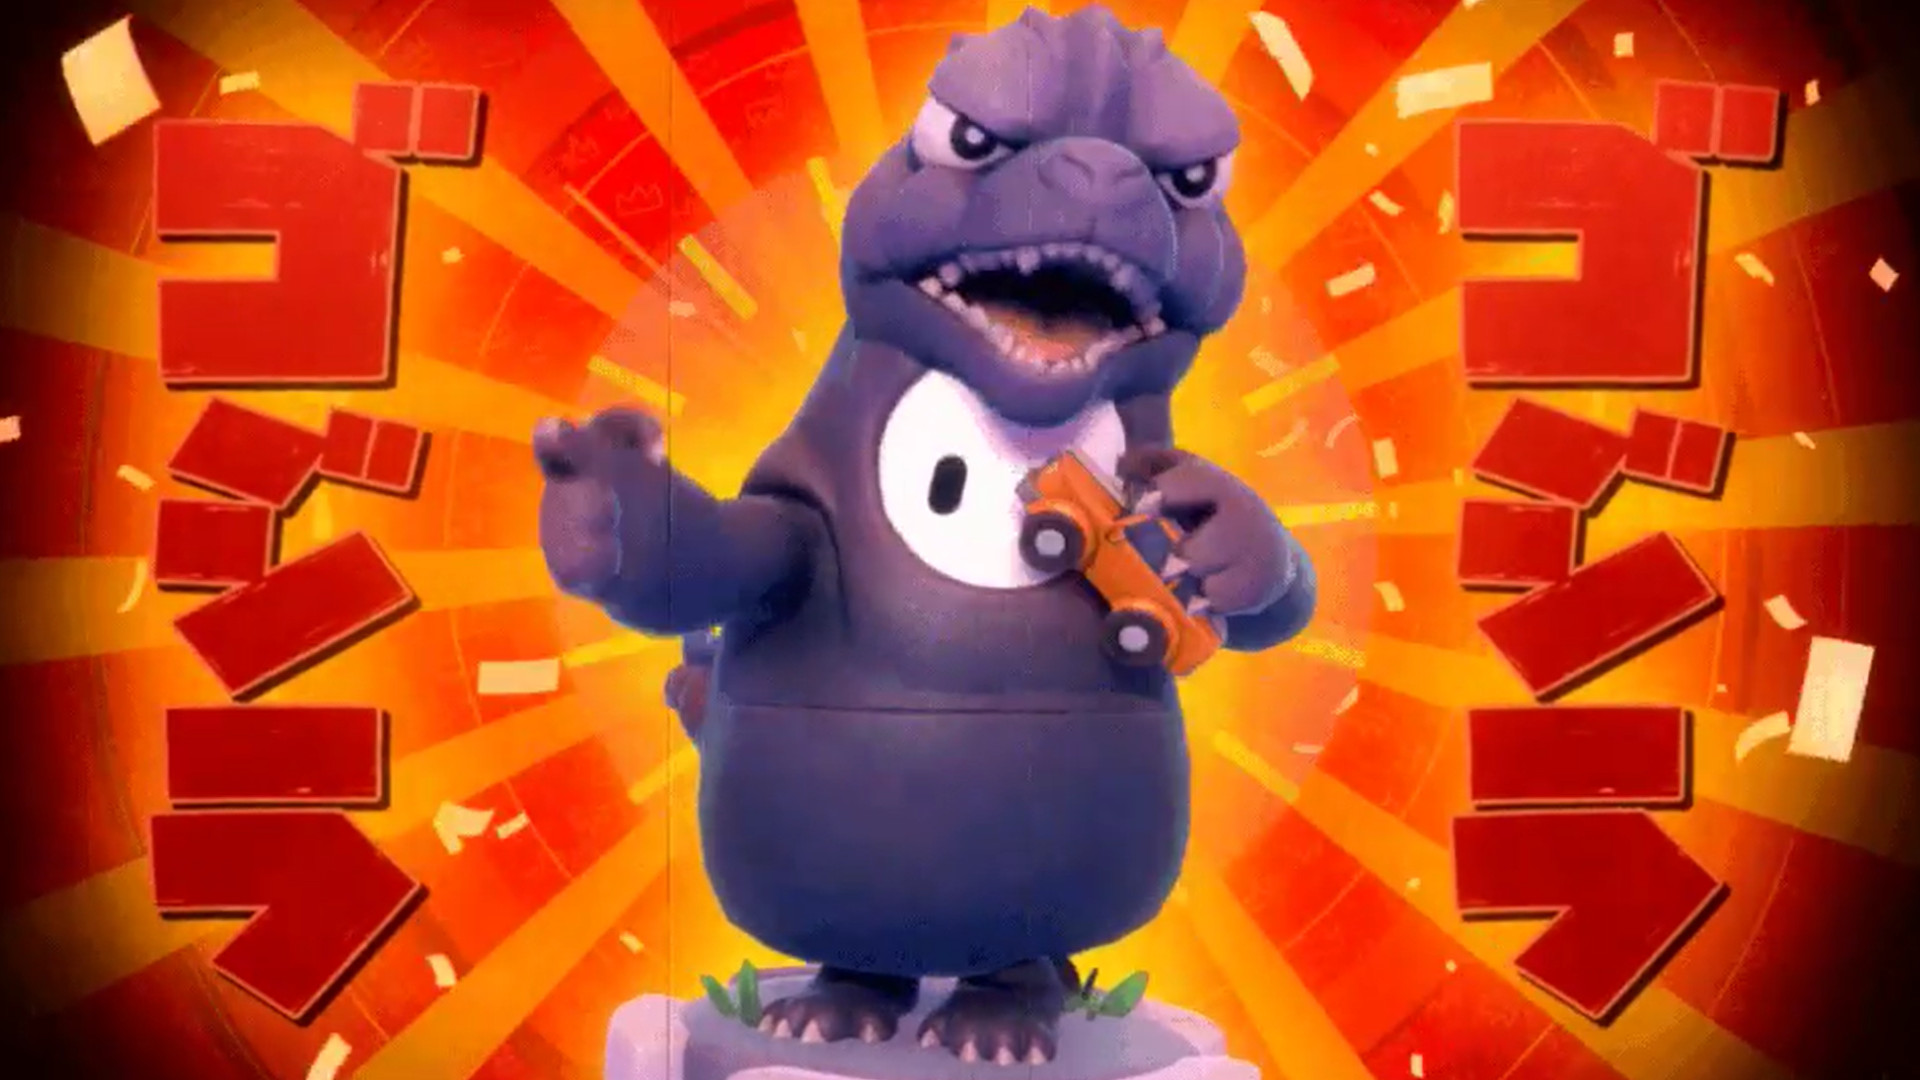 A Godzilla costume is stomping into Fall Guys next month